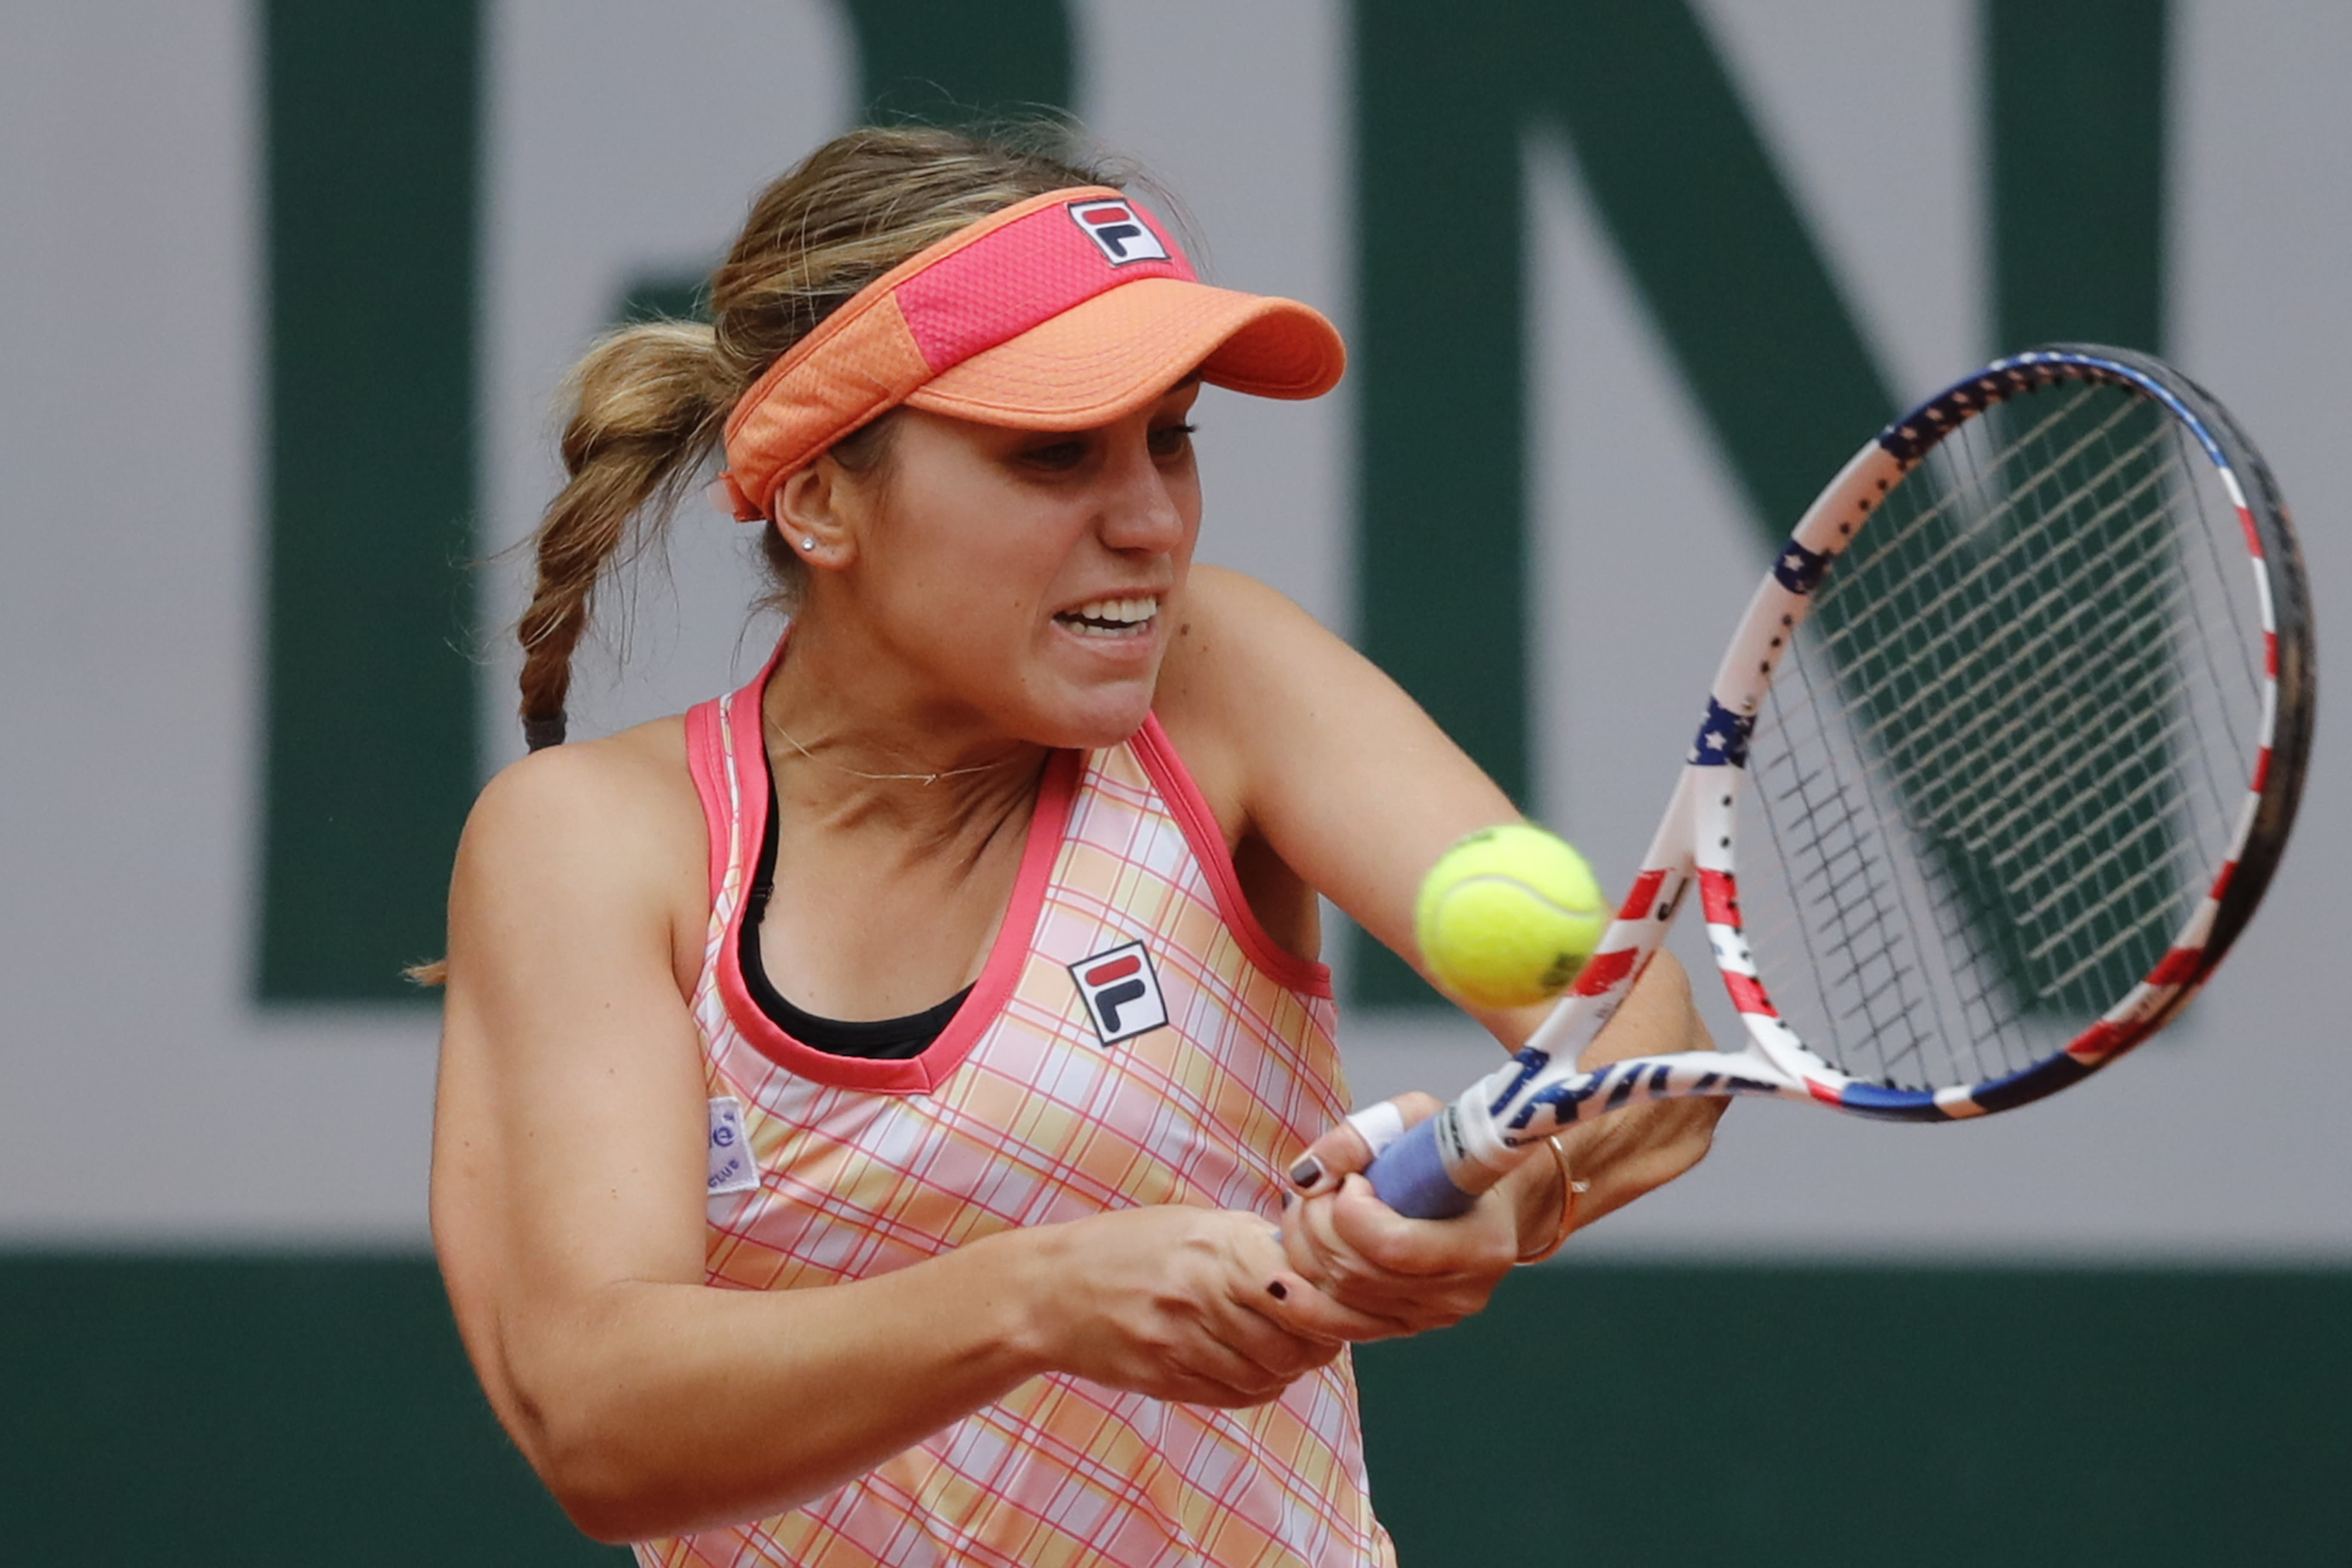 Sofia Kenin of the U.S. plays a shot against Romania's Irina Bara in the third round match of the French Open tennis tournament at the Roland Garros stadium in Paris, France, Saturday, Oct. 3, 2020. (AP Photo/Christophe Ena)